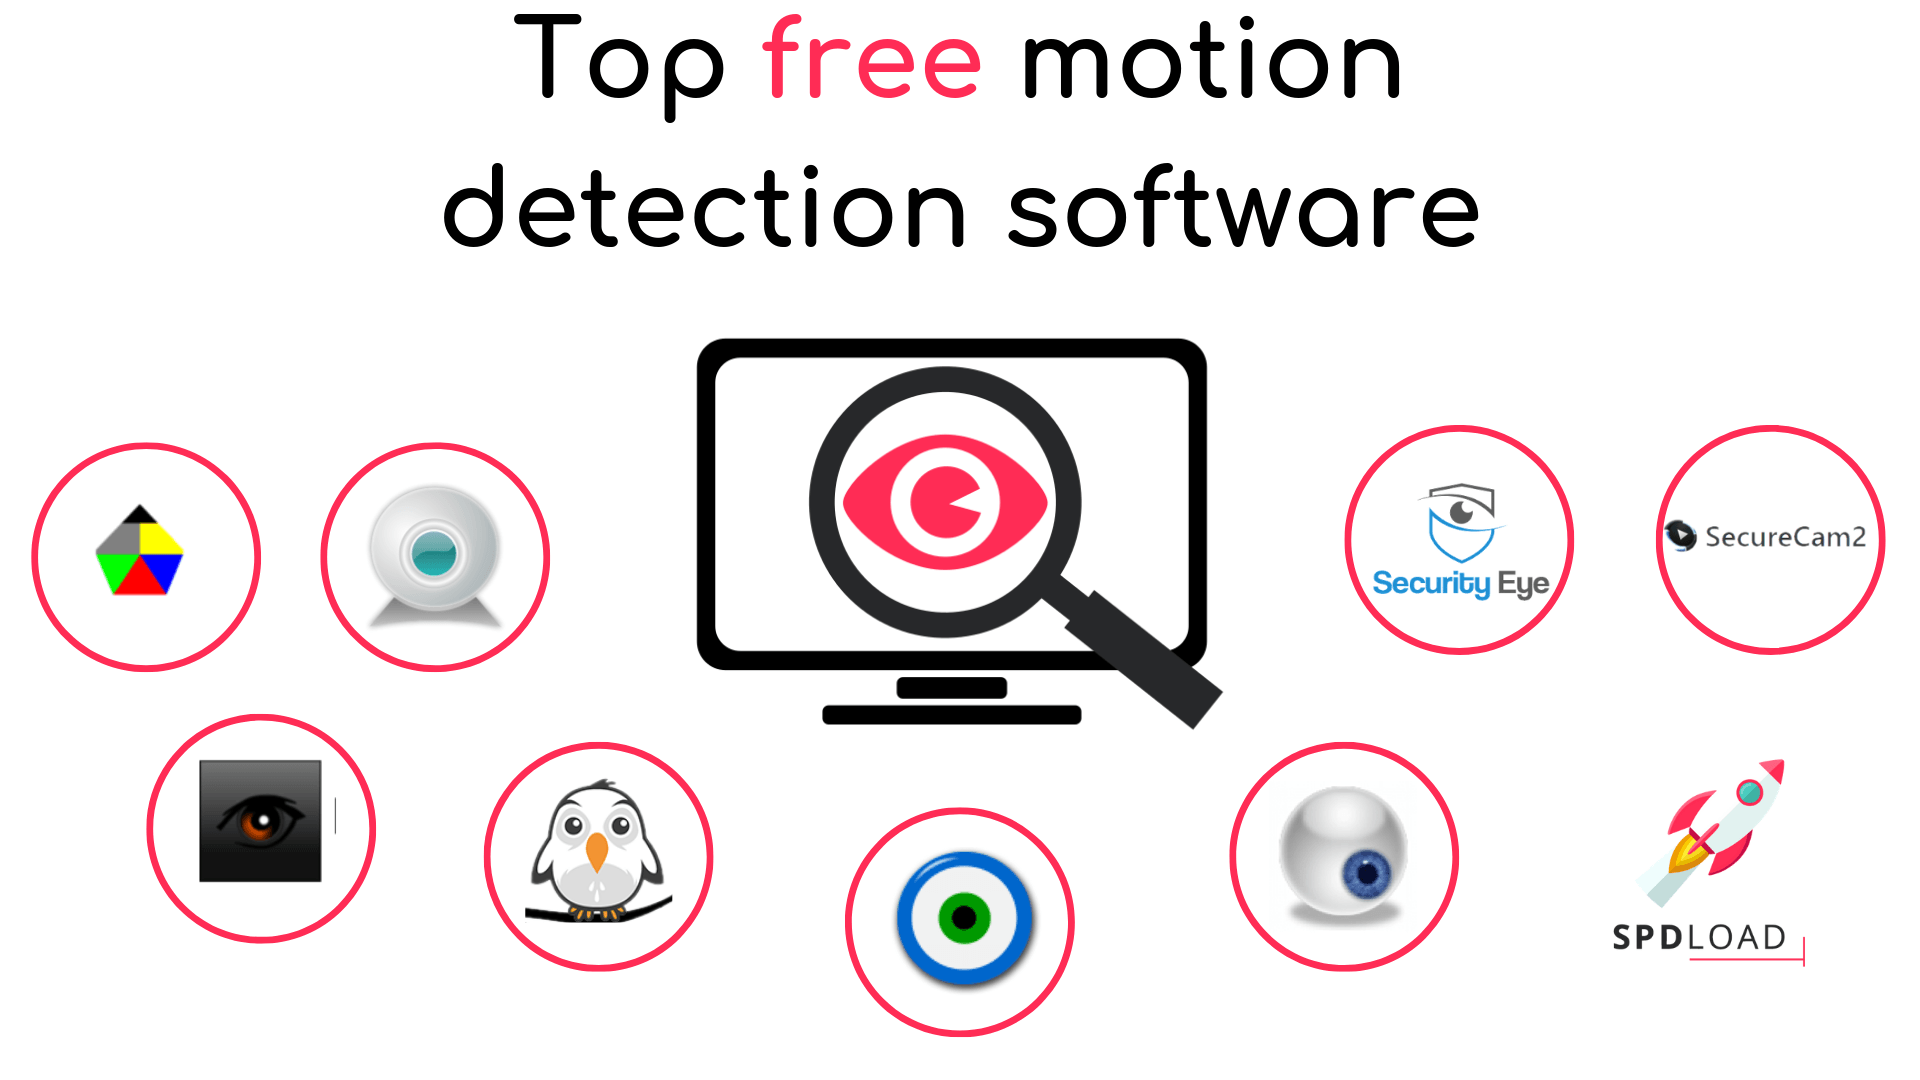 Top free motion detection software